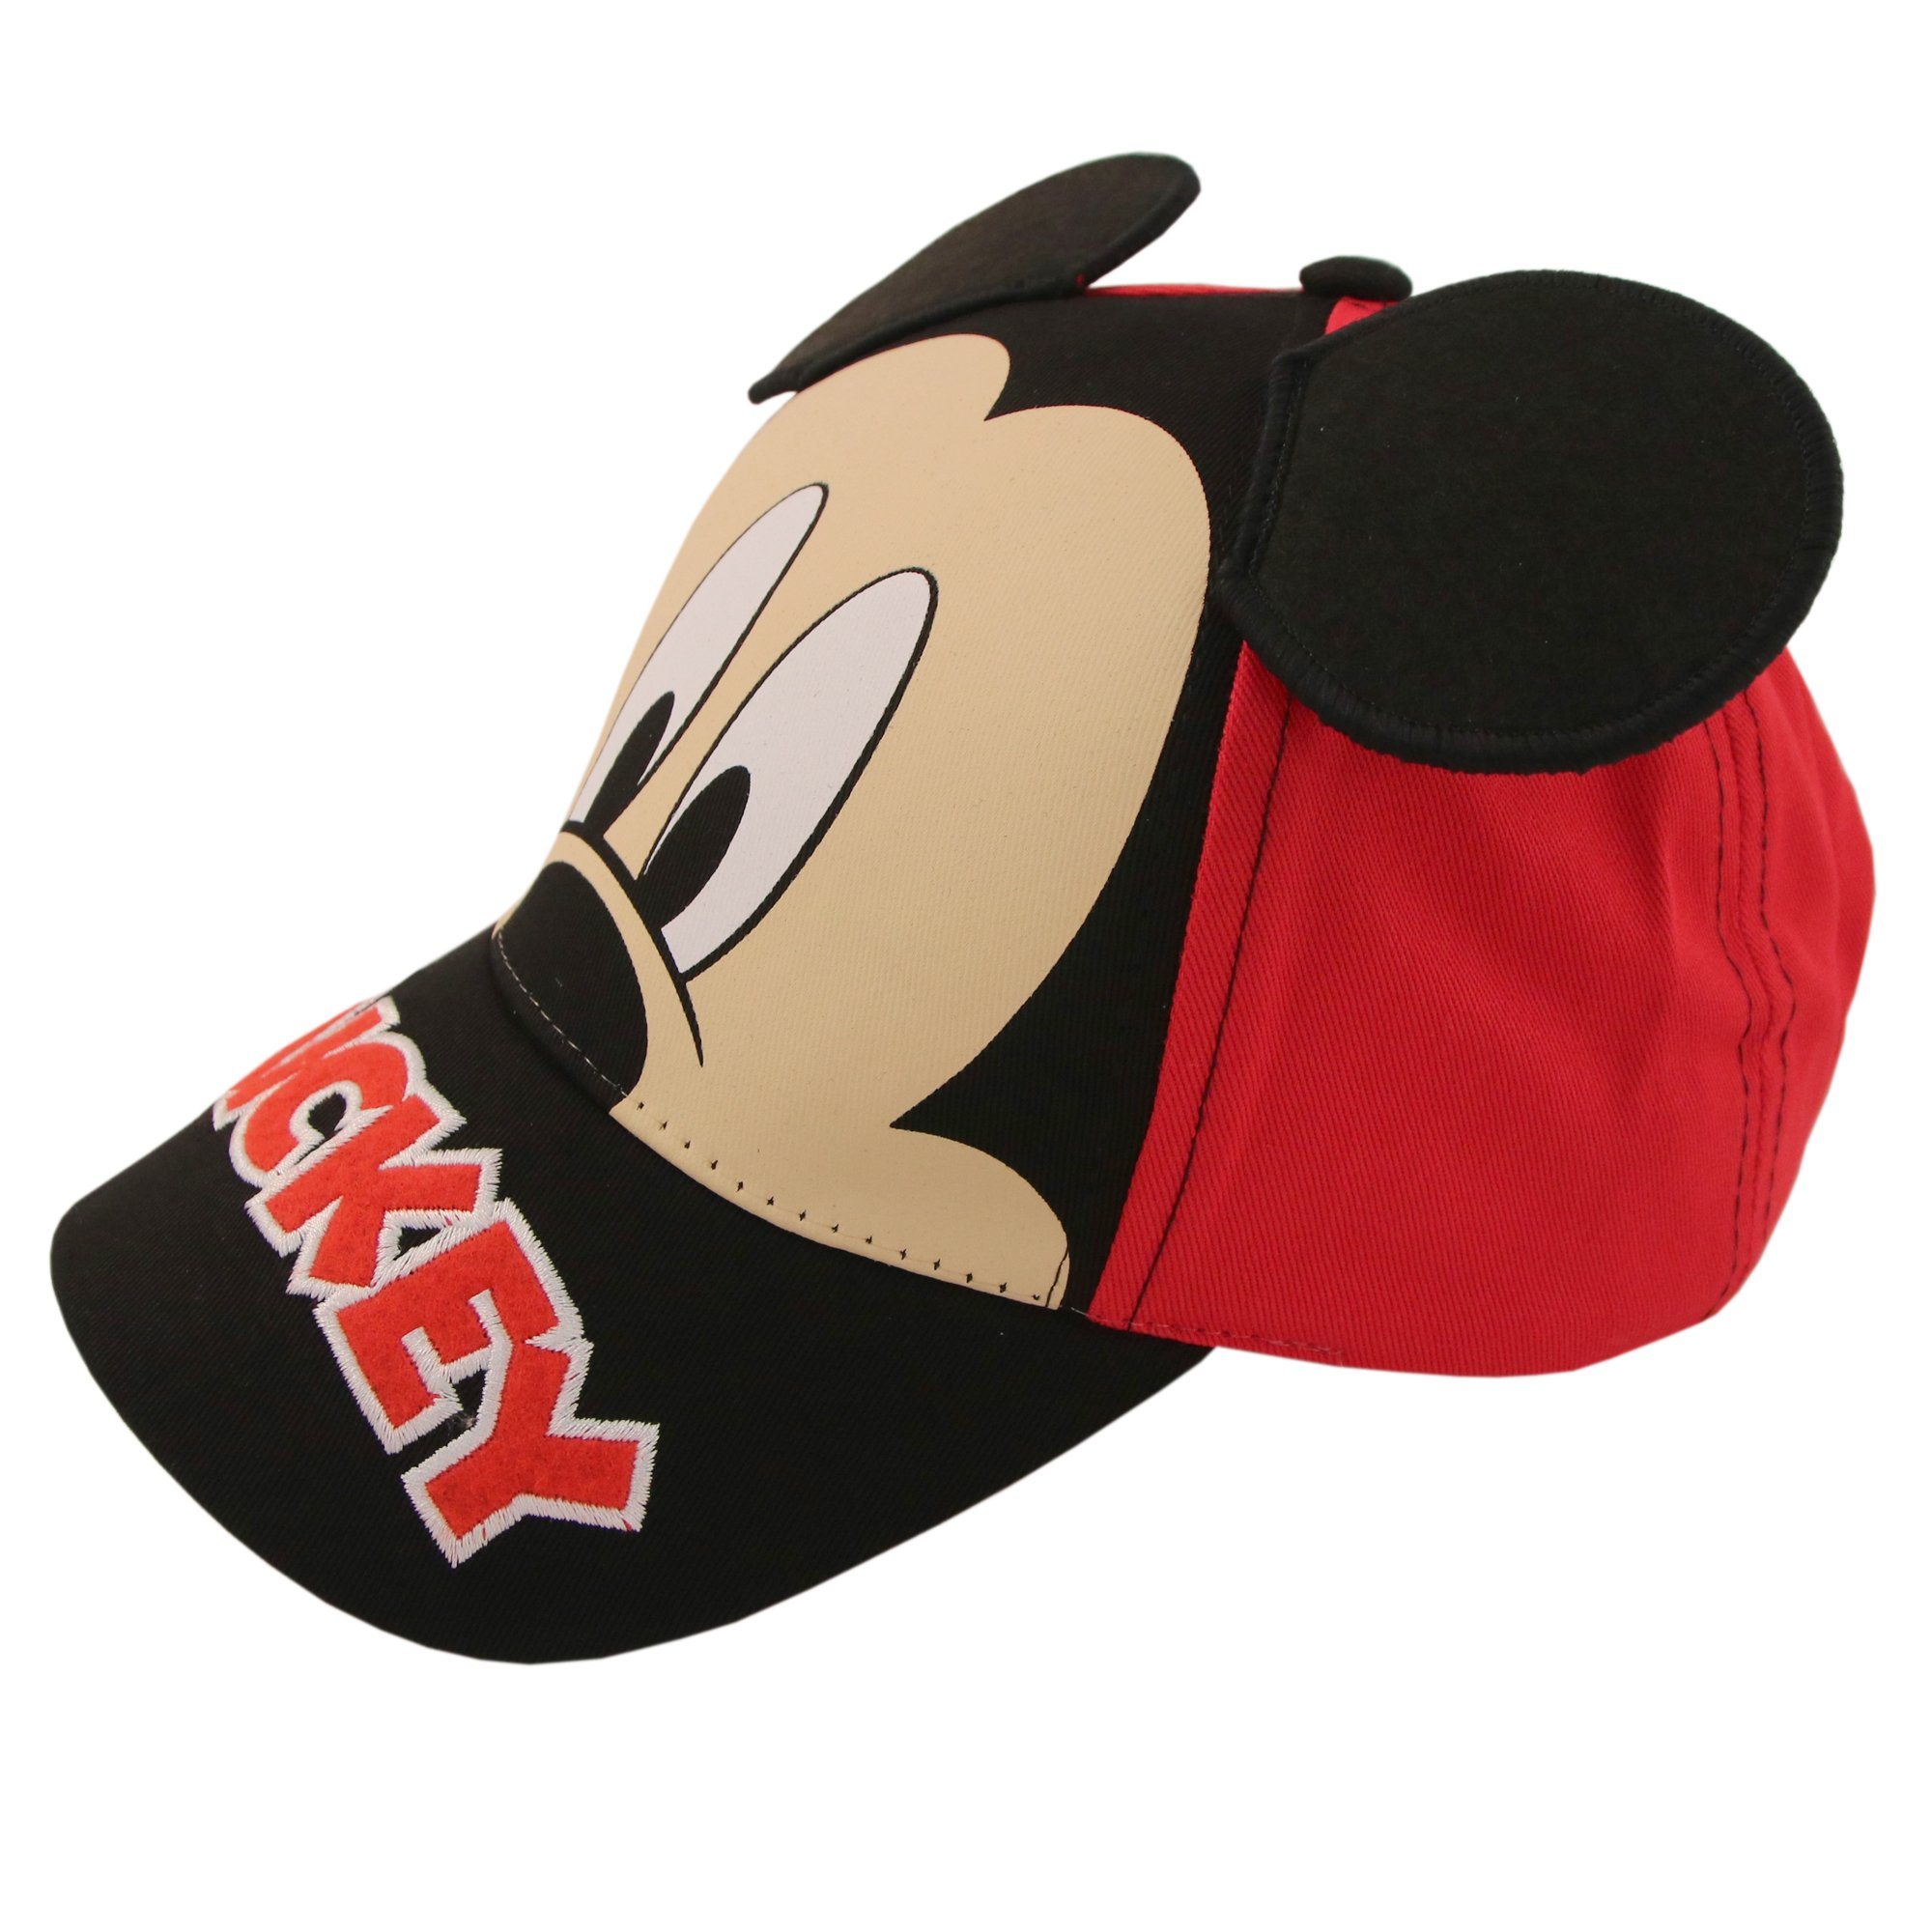 Disney Little Boys Mickey Mouse Character Cotton Baseball Cap, Red/Black, Age 2-7 (Little Boys - Age 4-7 – 53CM)